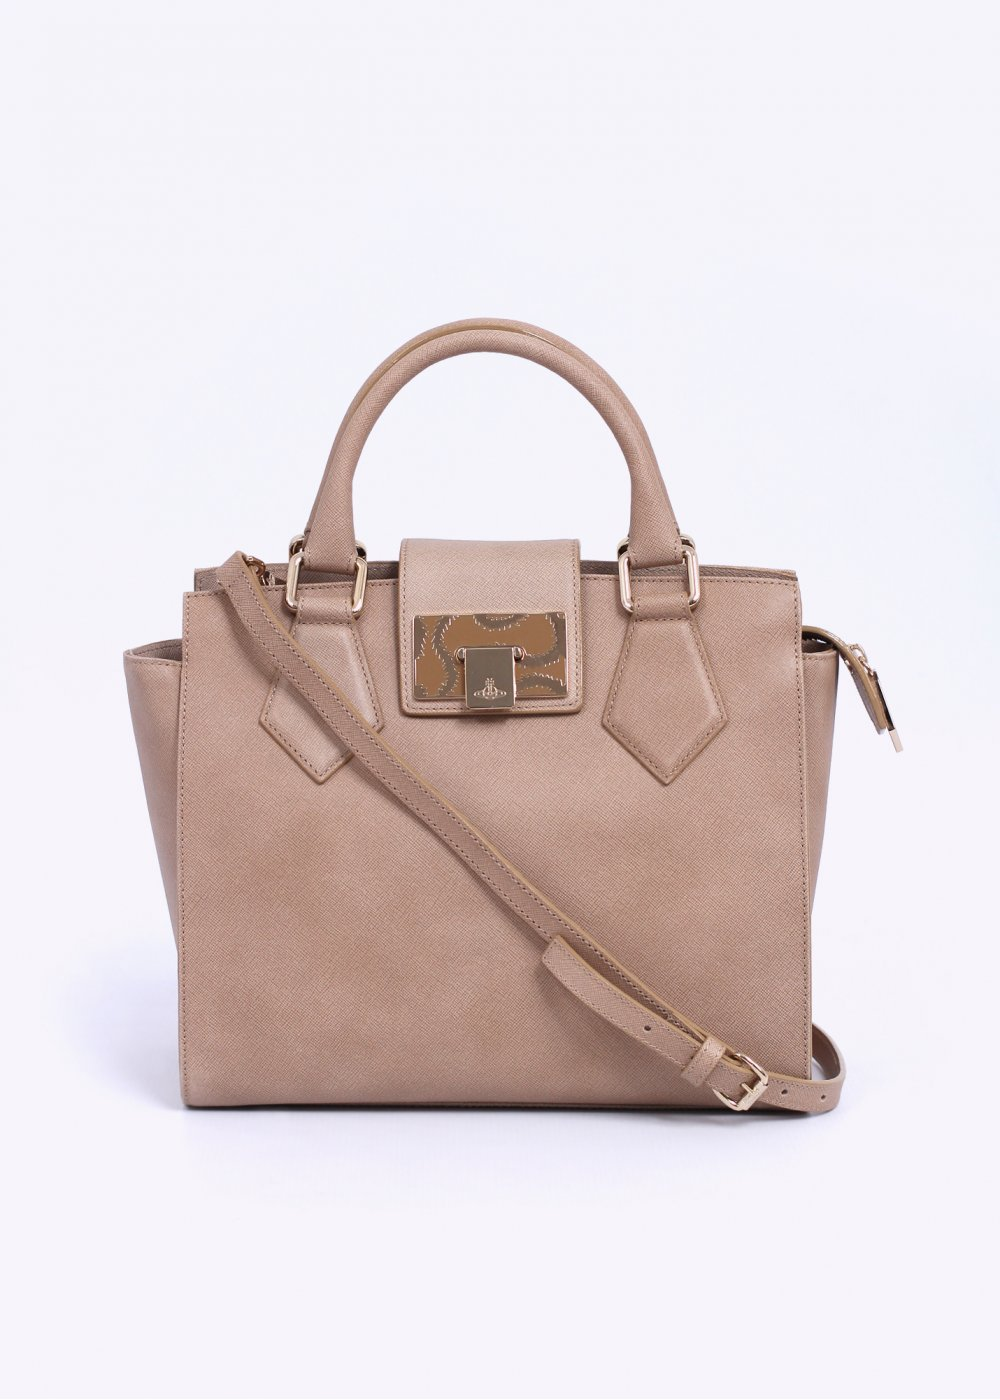 Free shipping BOTH ways on Handbags, Beige, Women, from our vast selection of styles. Fast delivery, and 24/7/ real-person service with a smile. Click or call